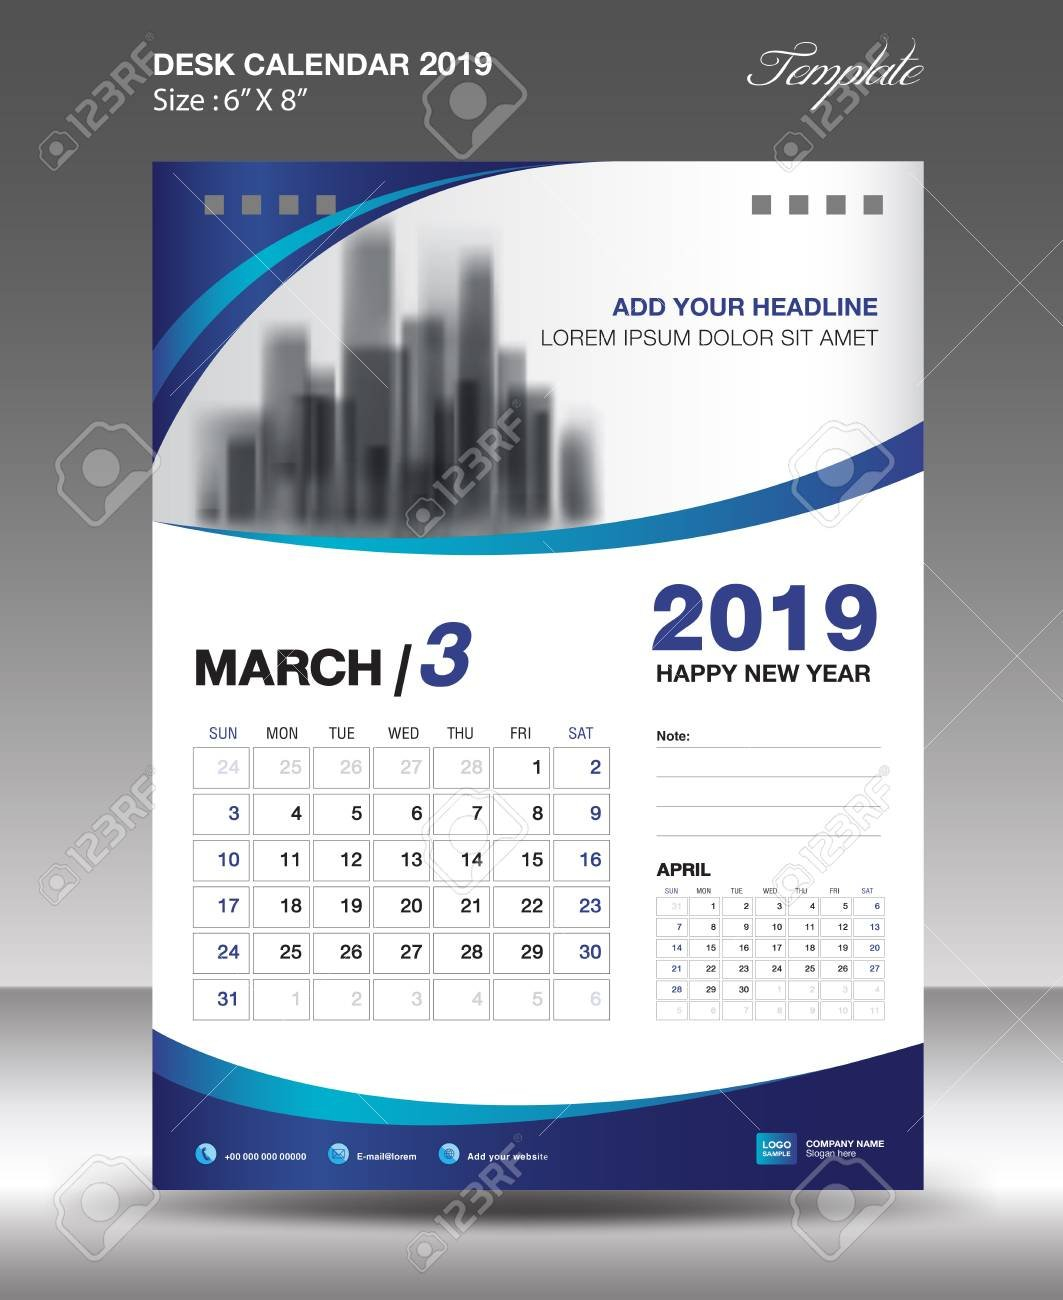 March Desk Calendar 2019 Template Flyer Design Vector Illustration Design A Calendar 2019